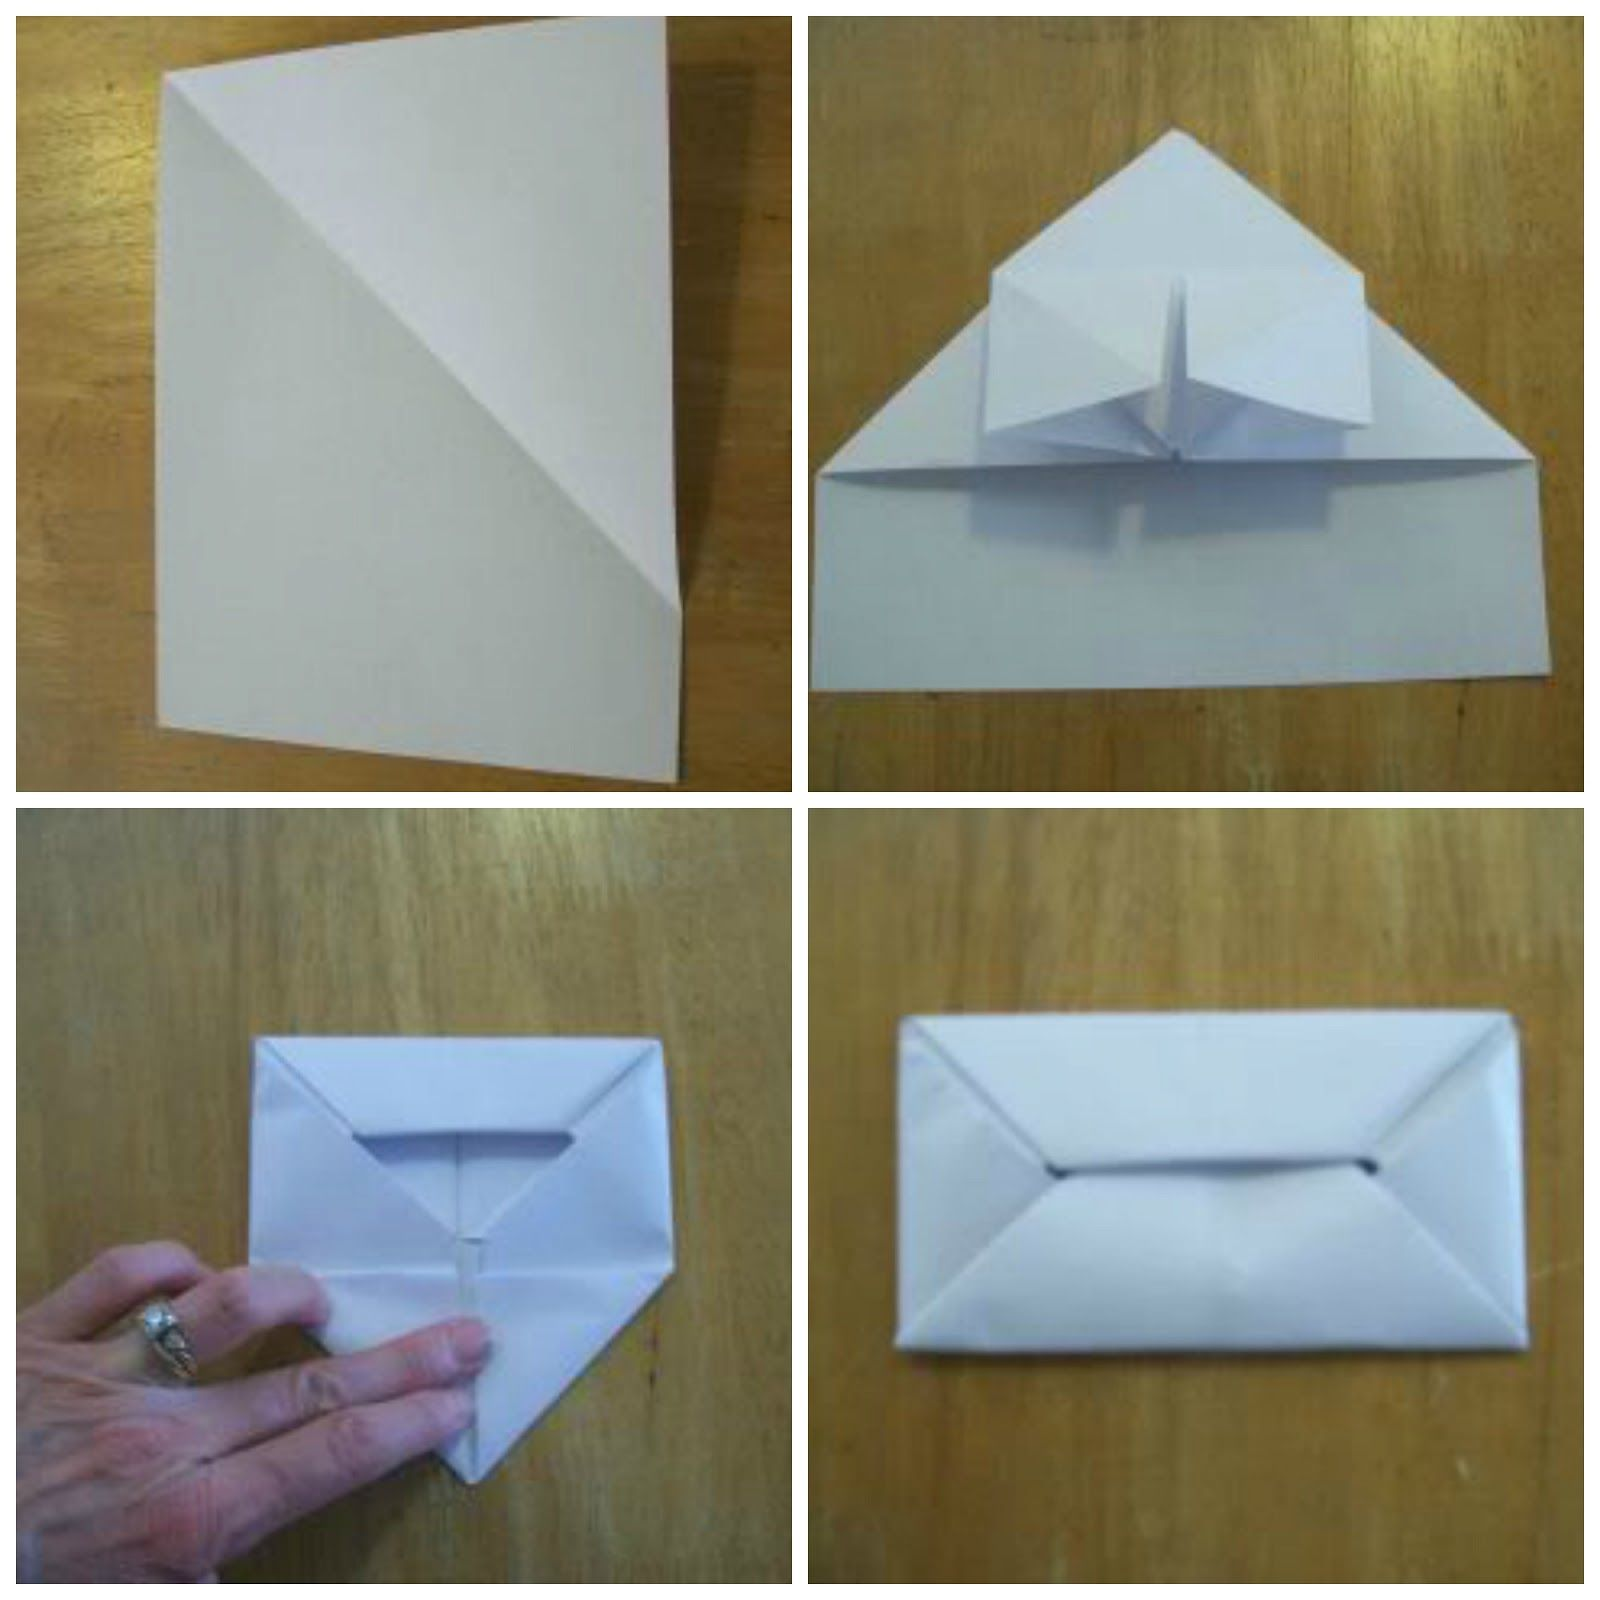 GRADE SCHOOL NOTE FOLDING: A LITTLE TUTORIAL | Gramkin Paper Studio